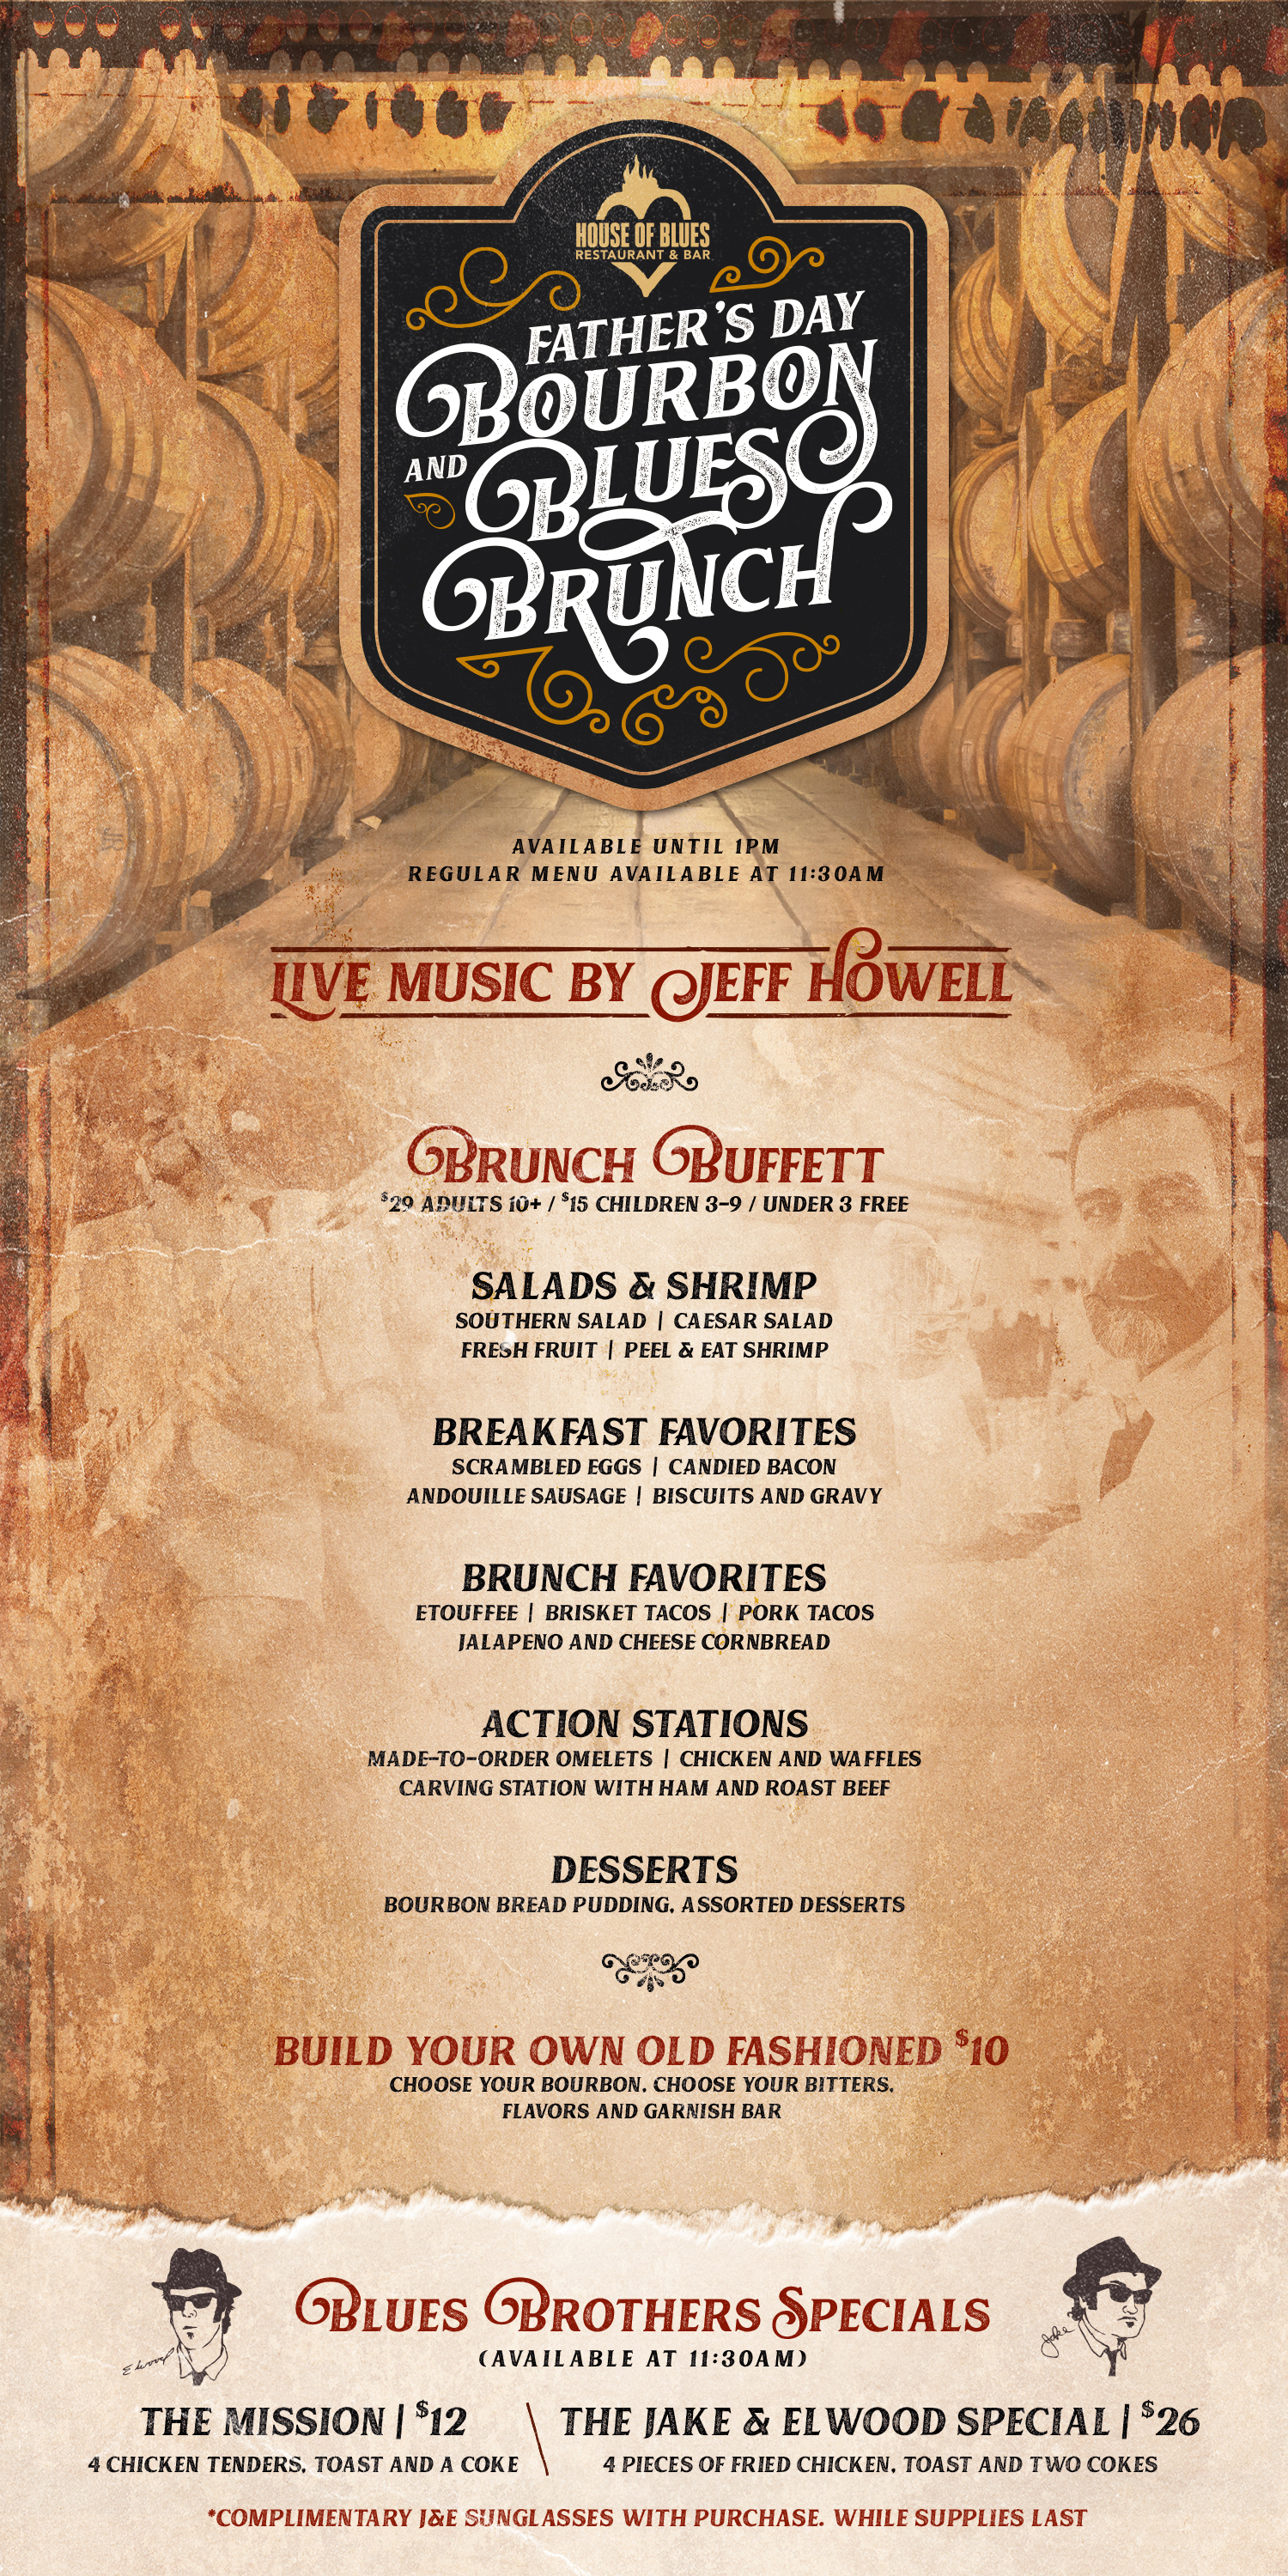 Father's Day Bourbon and Blues Brunch Menu June 16th 2019